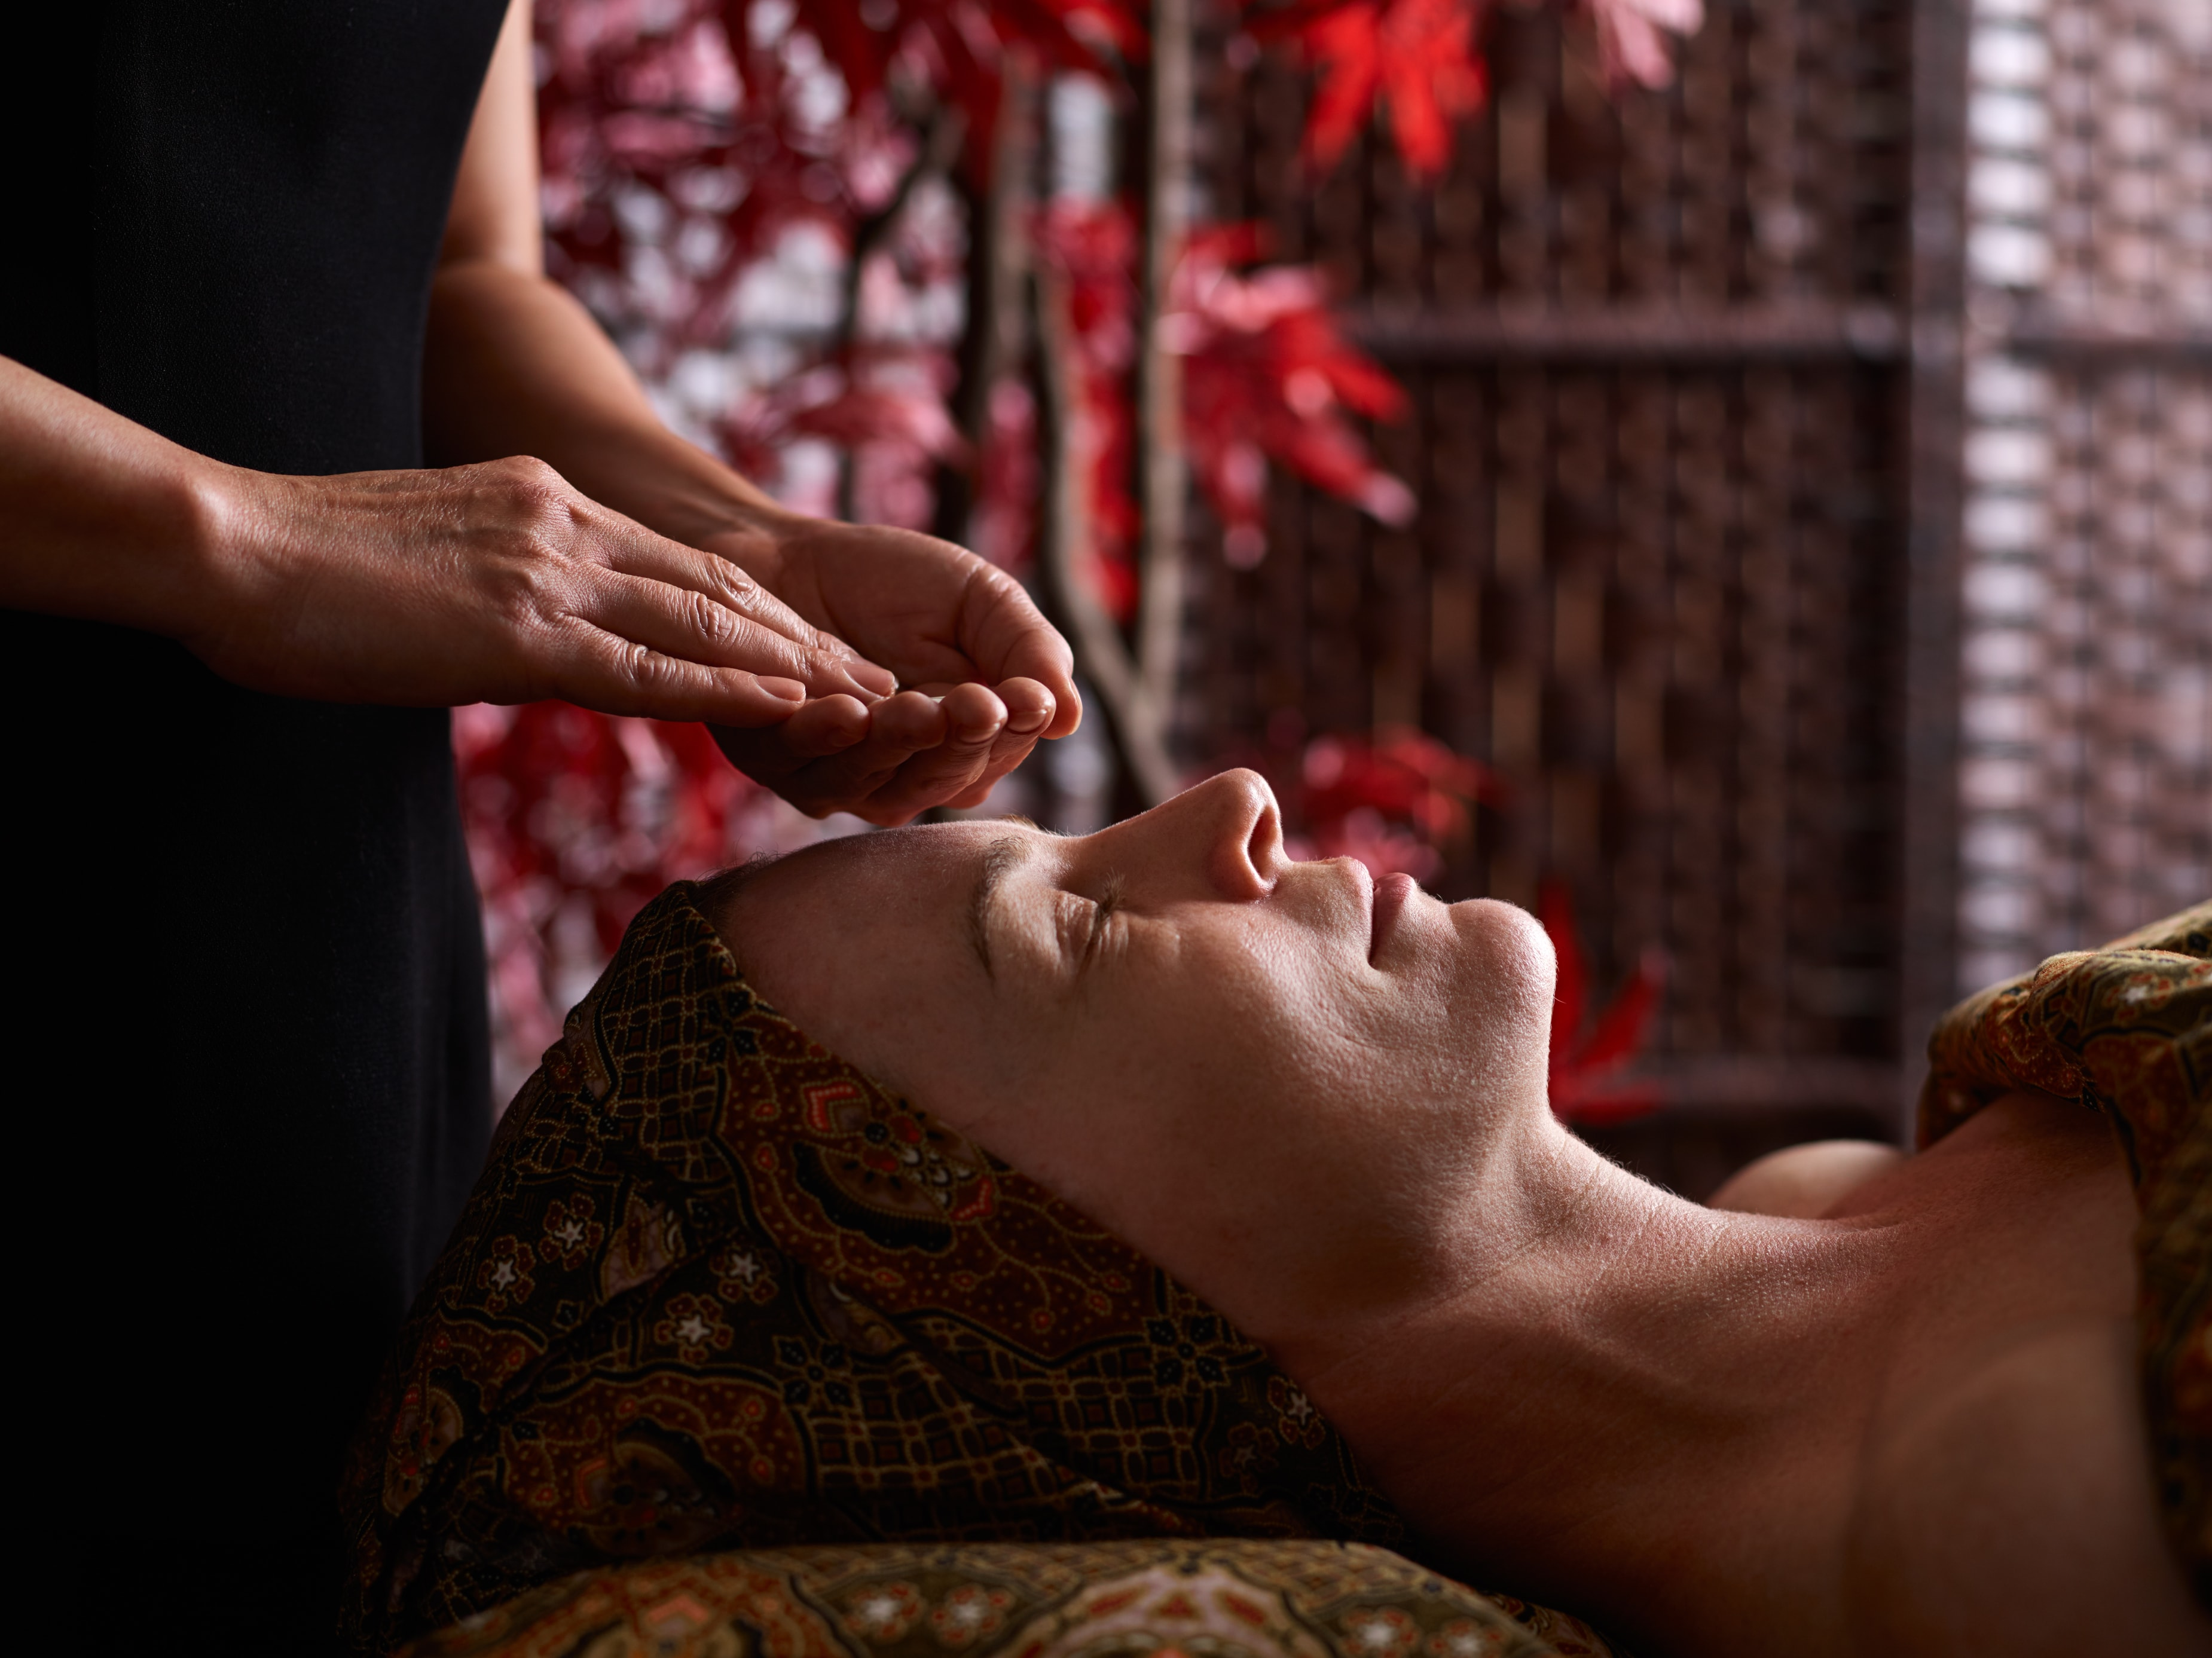 A nourishing facial from Willow Organic Beauty available at SenSpa